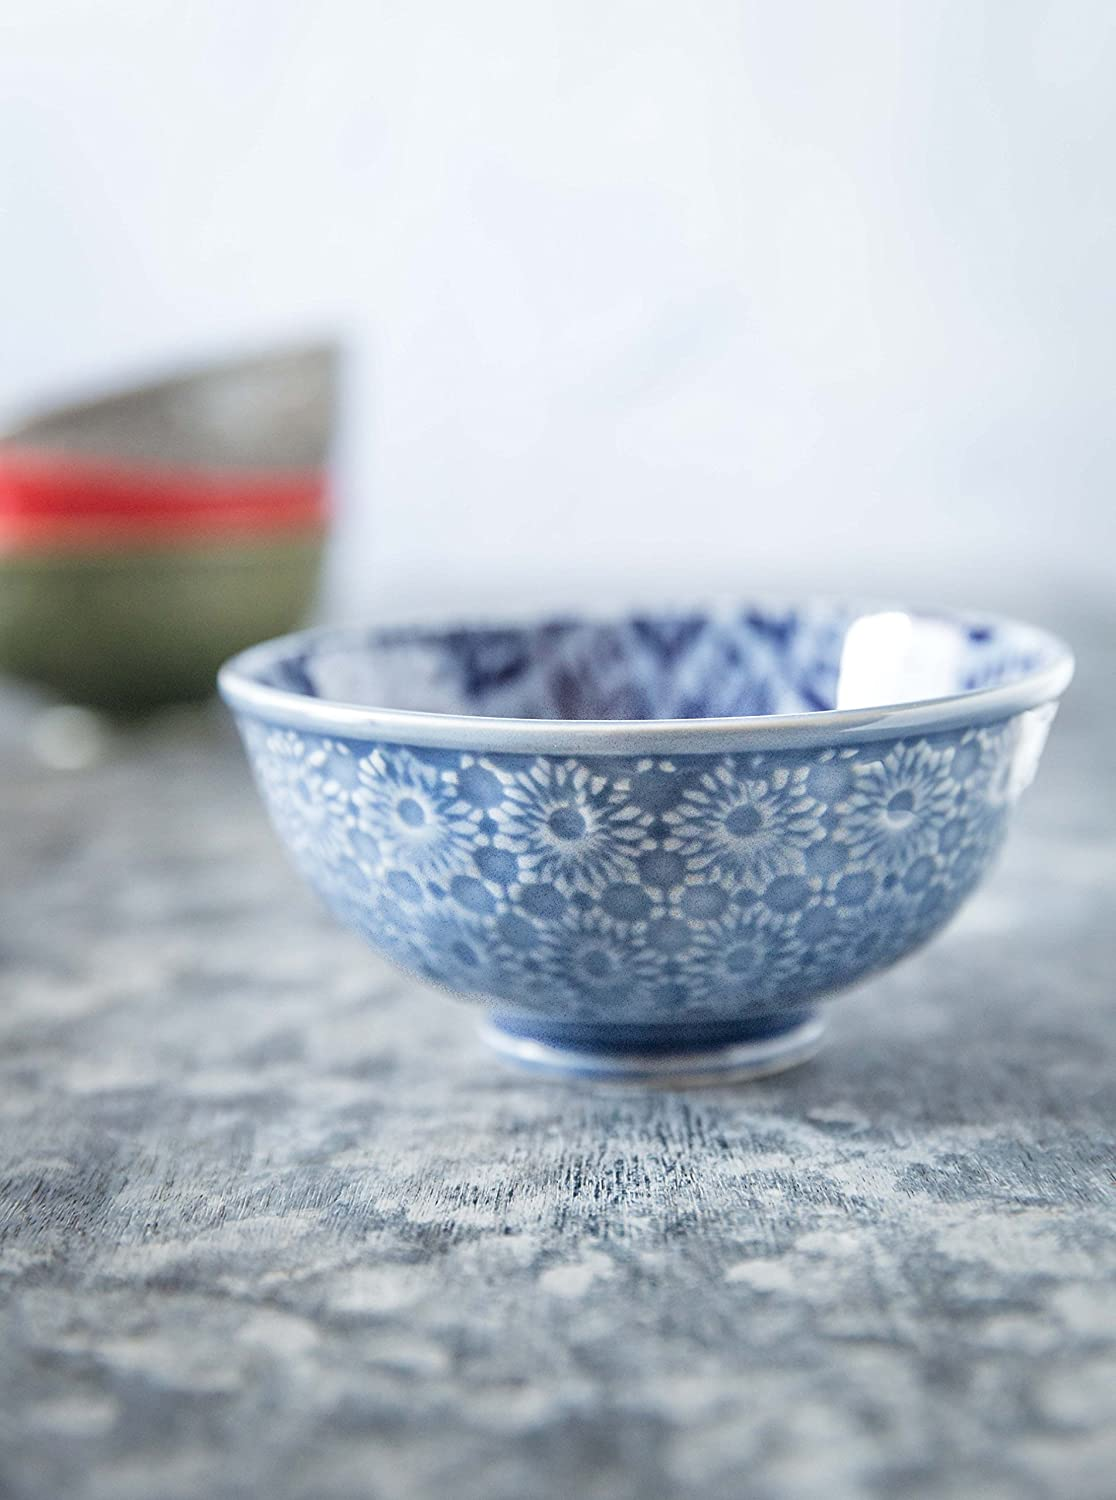 Buy The Crockery Hut Japanese Coloured Bowls Online at Low Prices in ...